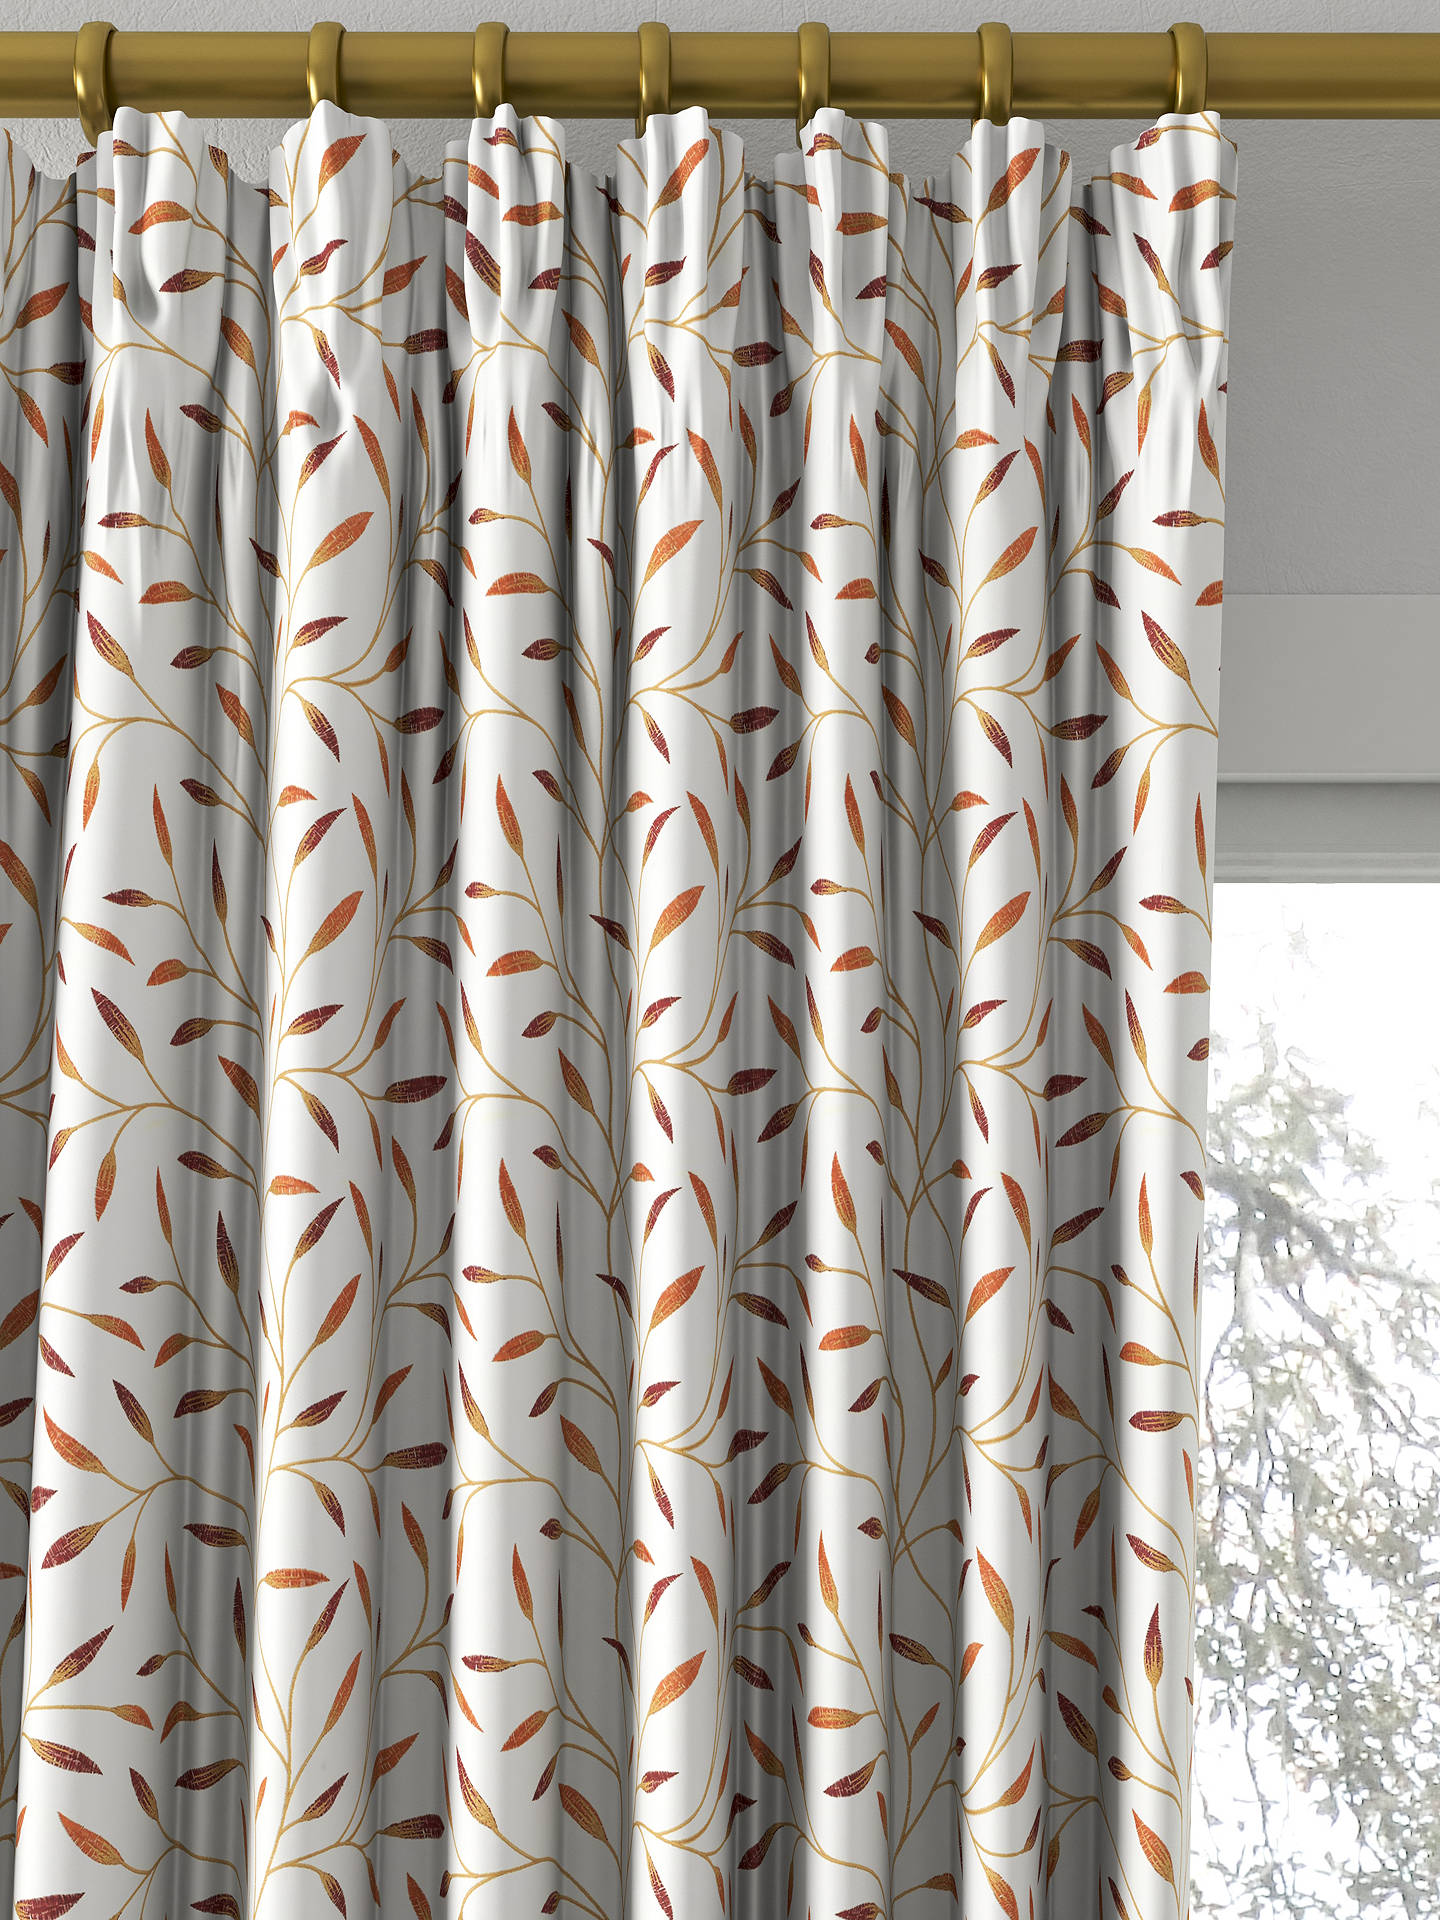 BuyJohn Lewis Partners Christine Made To Measure Curtains Red Nut Online At Johnlewis